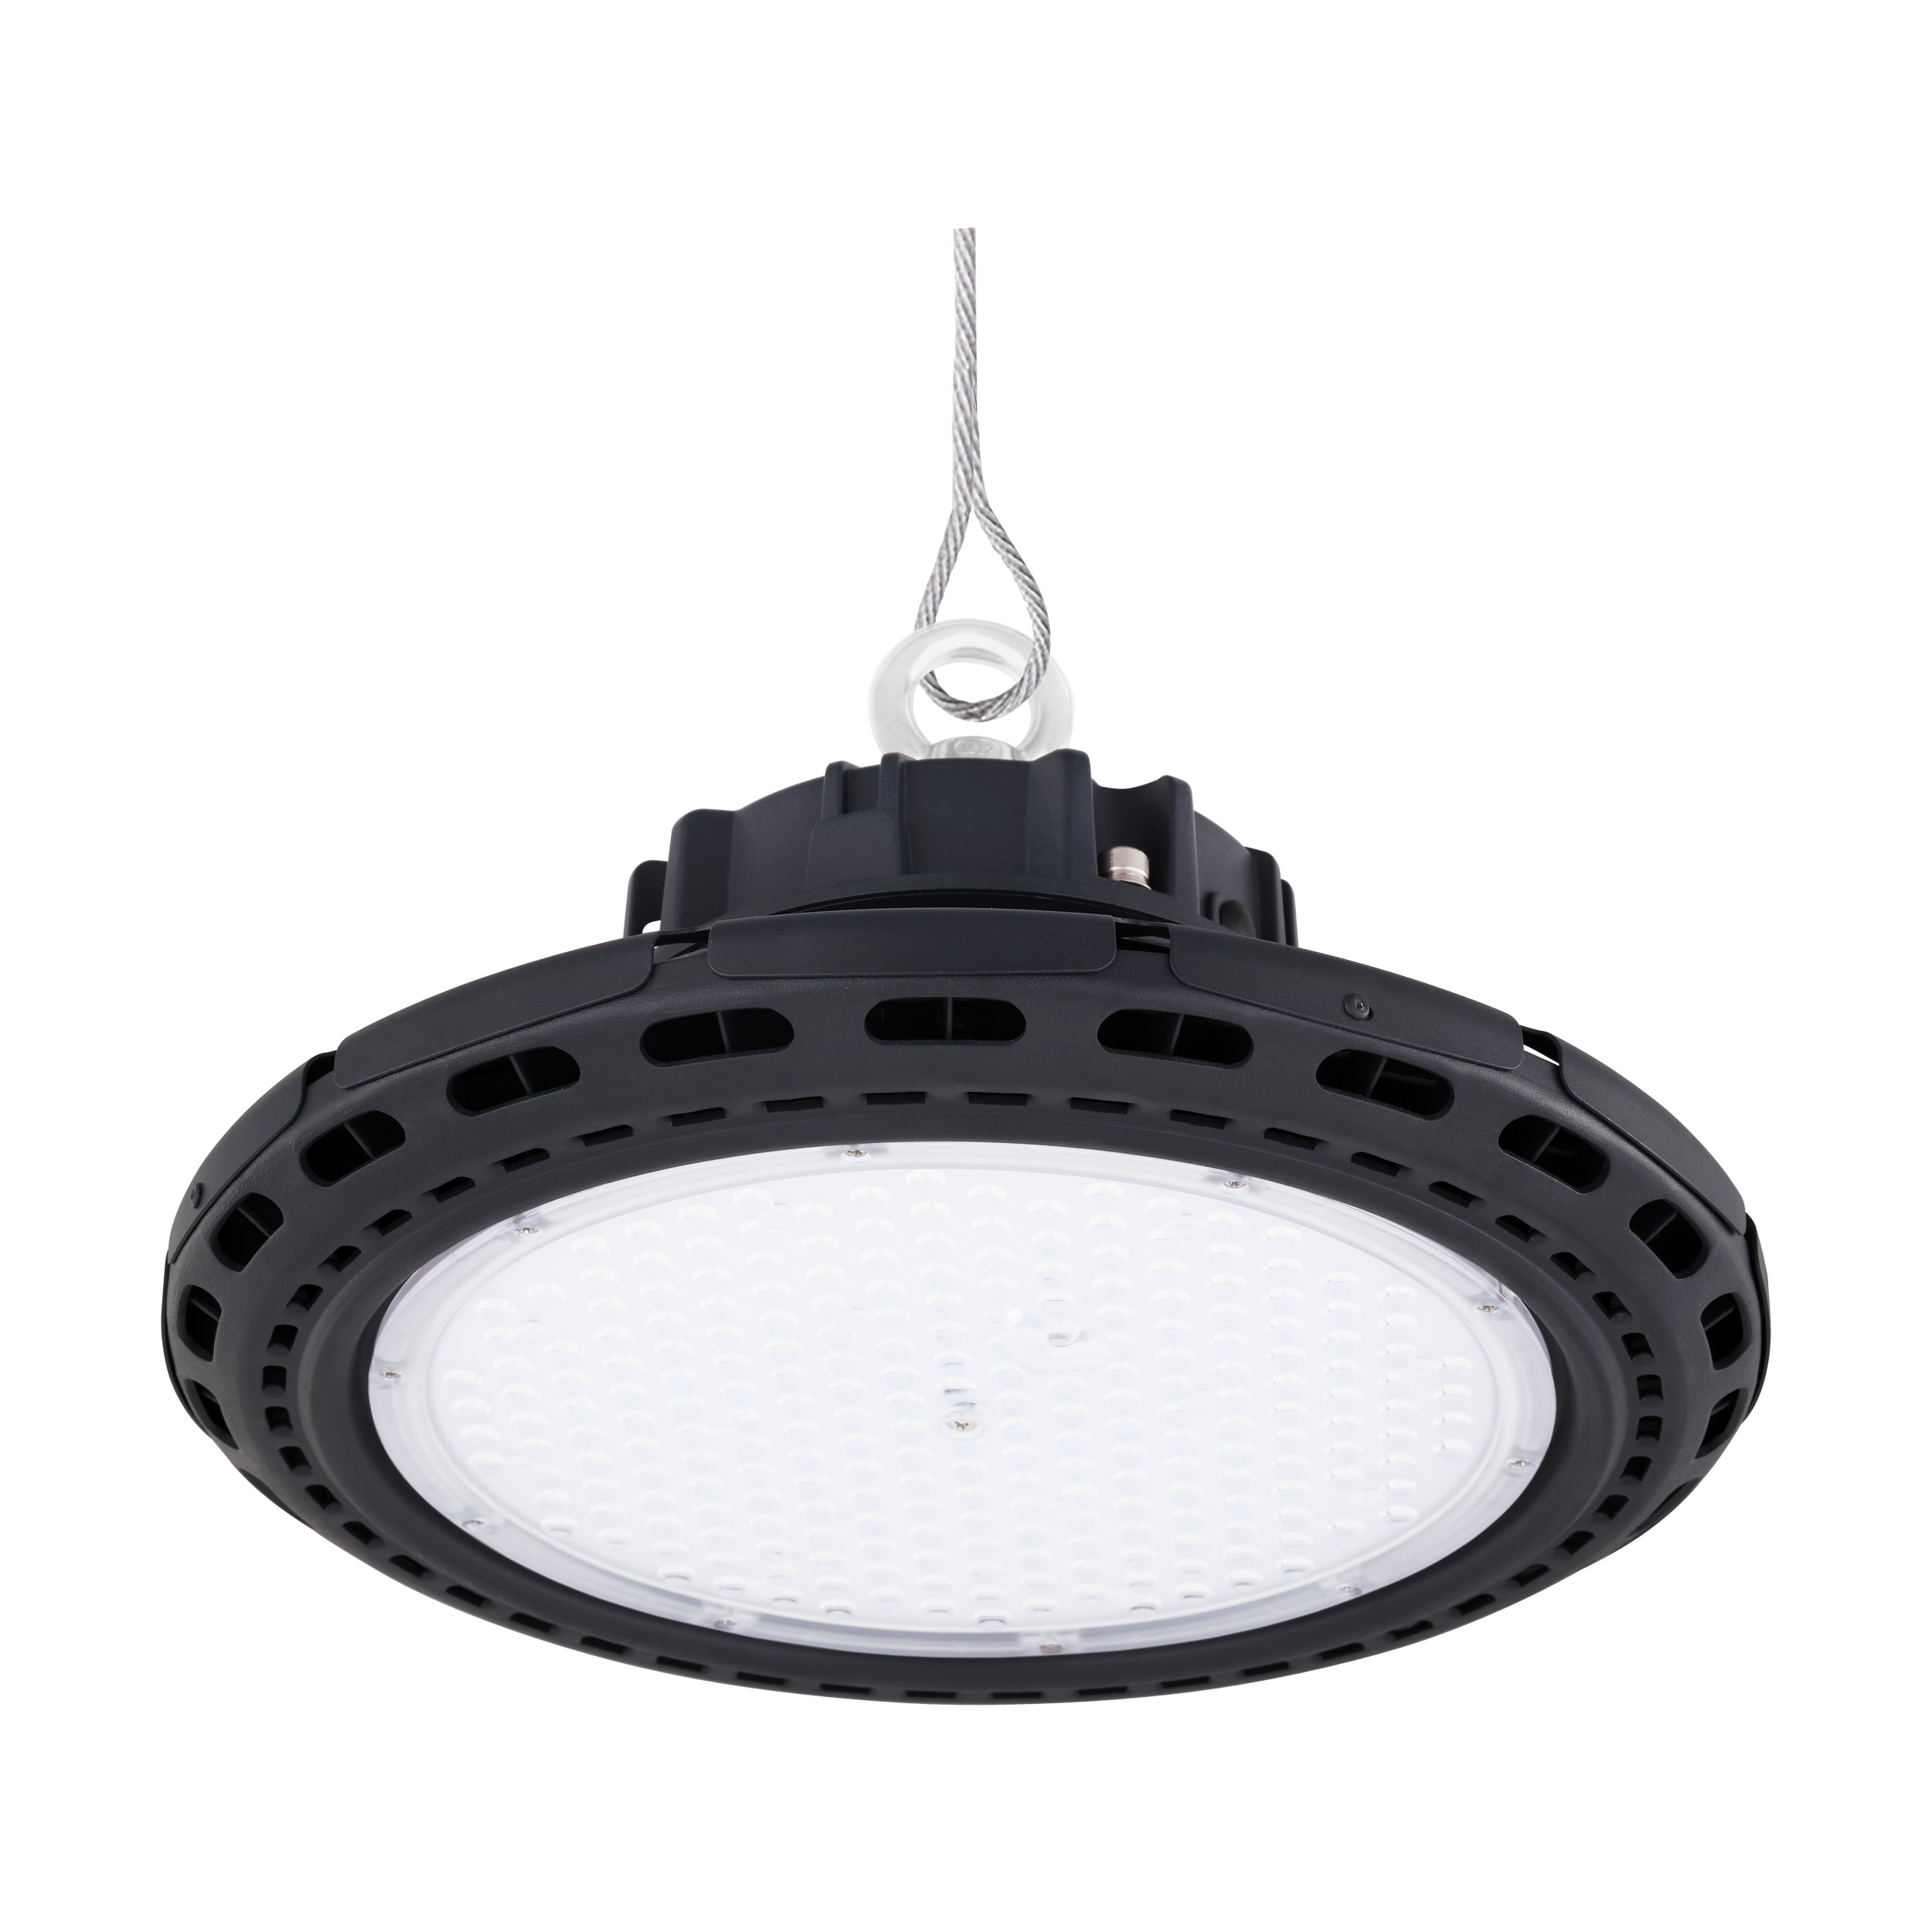 1 Stk LED High Bay Capano E27 200W anthrazit (RAL7016) LI63471---